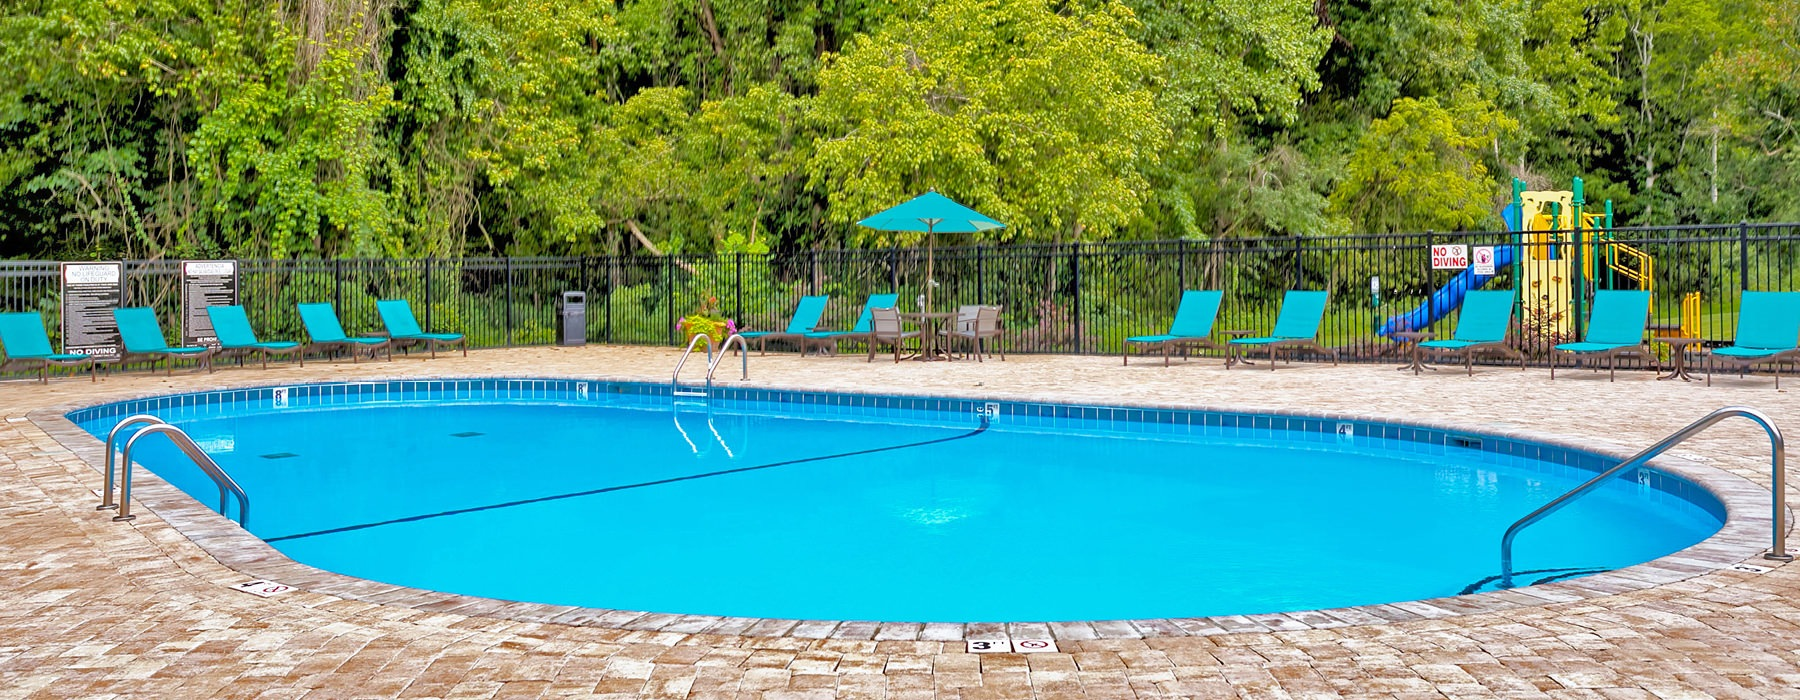 fenced in pool area with umbrella shaded tables and chairs